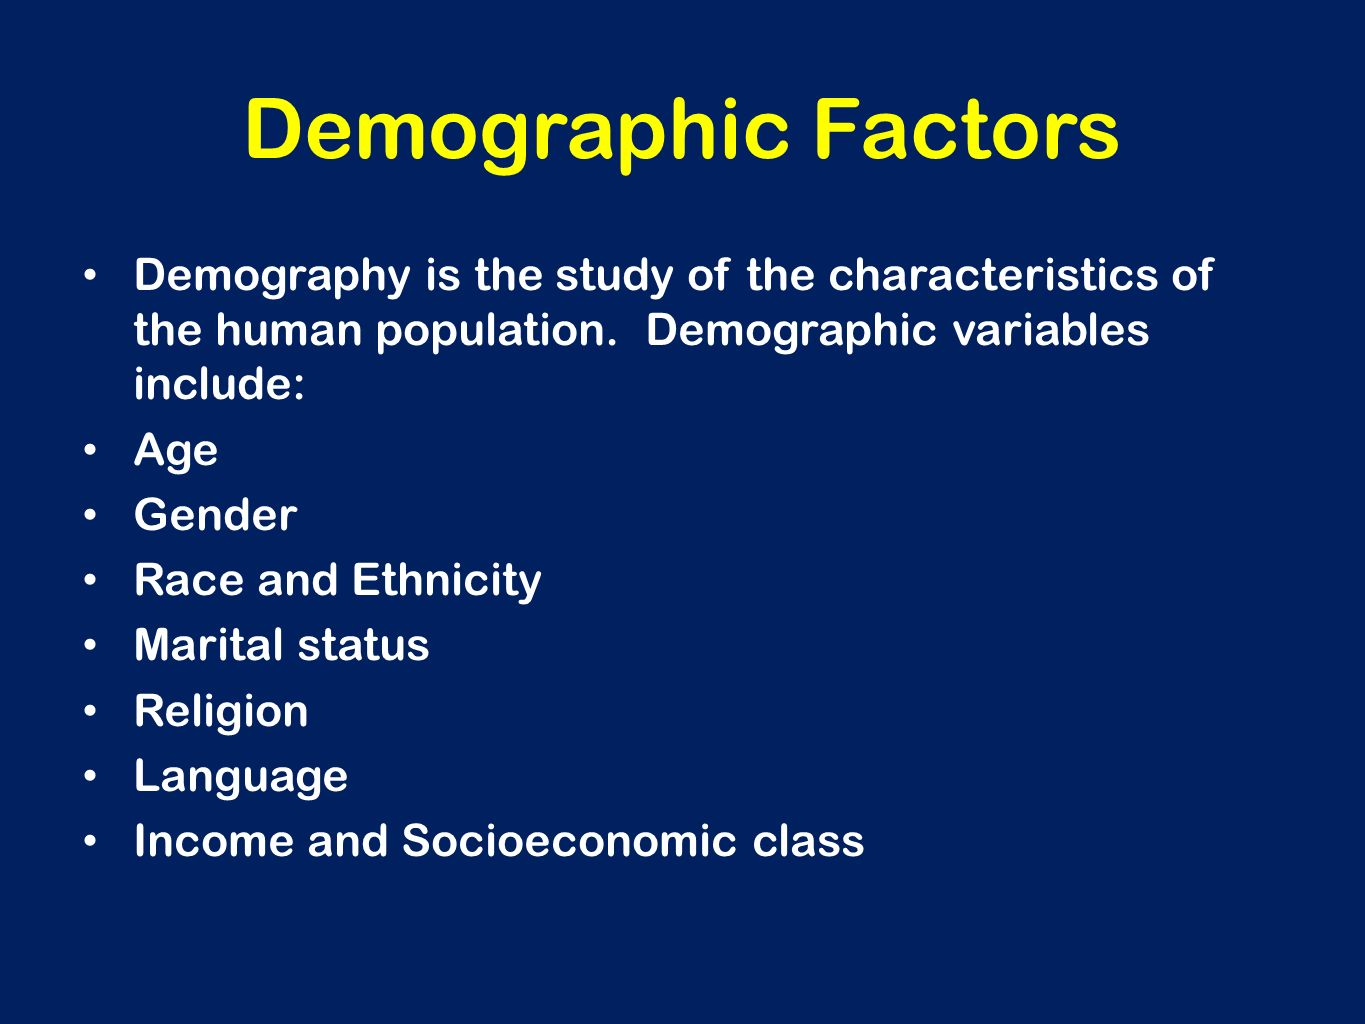 a study on the demographic factors The aim of the study was to evaluate the prevalence and extent of  in singapore  and investigate the influence of demographic factors and.